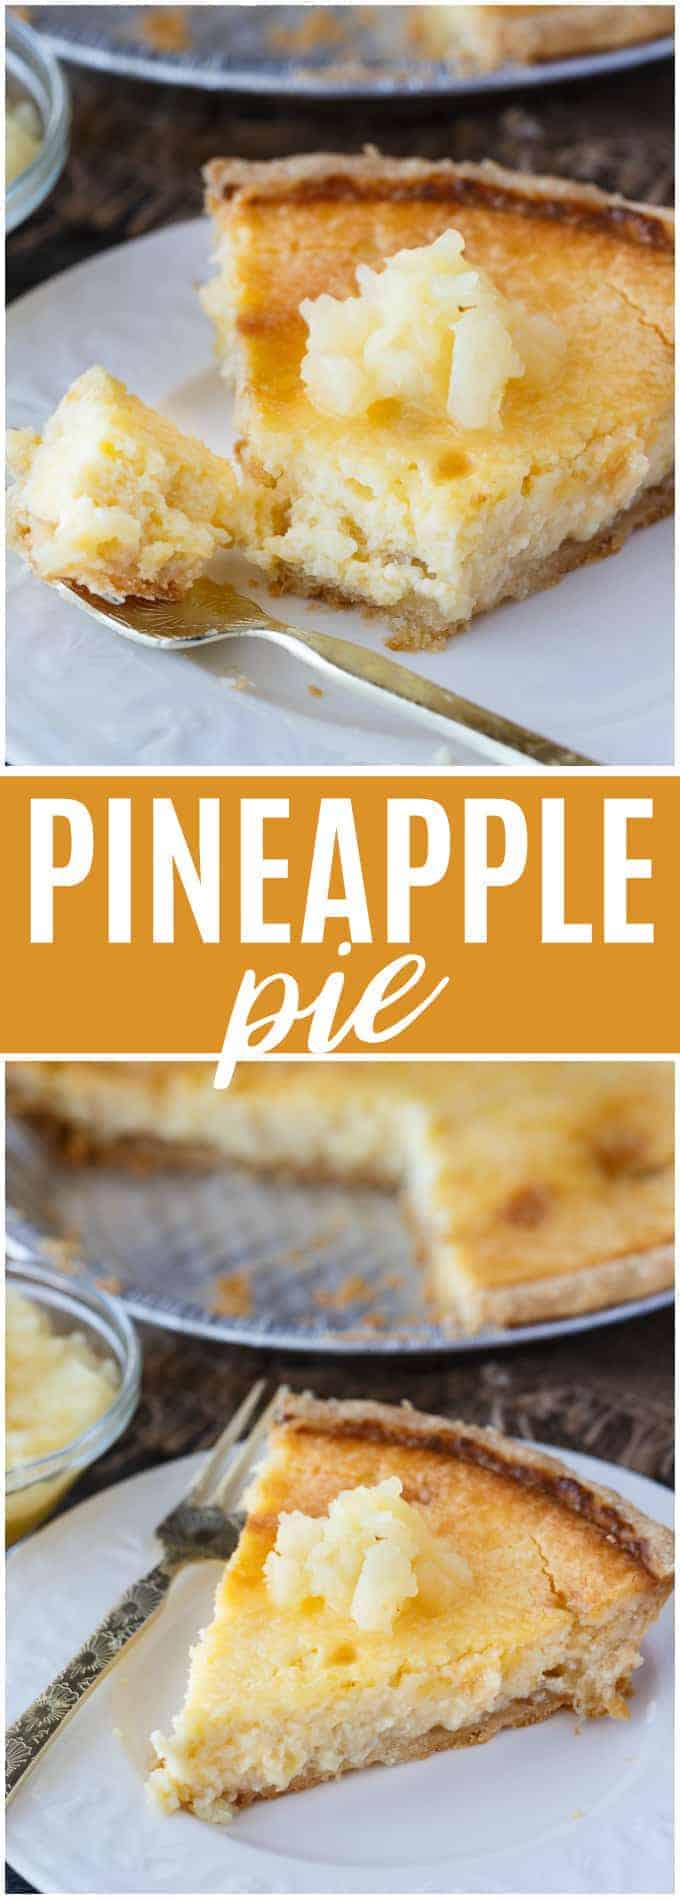 Pineapple Pie - Creamy, smooth and tropical! This pie is easy to prepare and guaranteed to be loved by all.